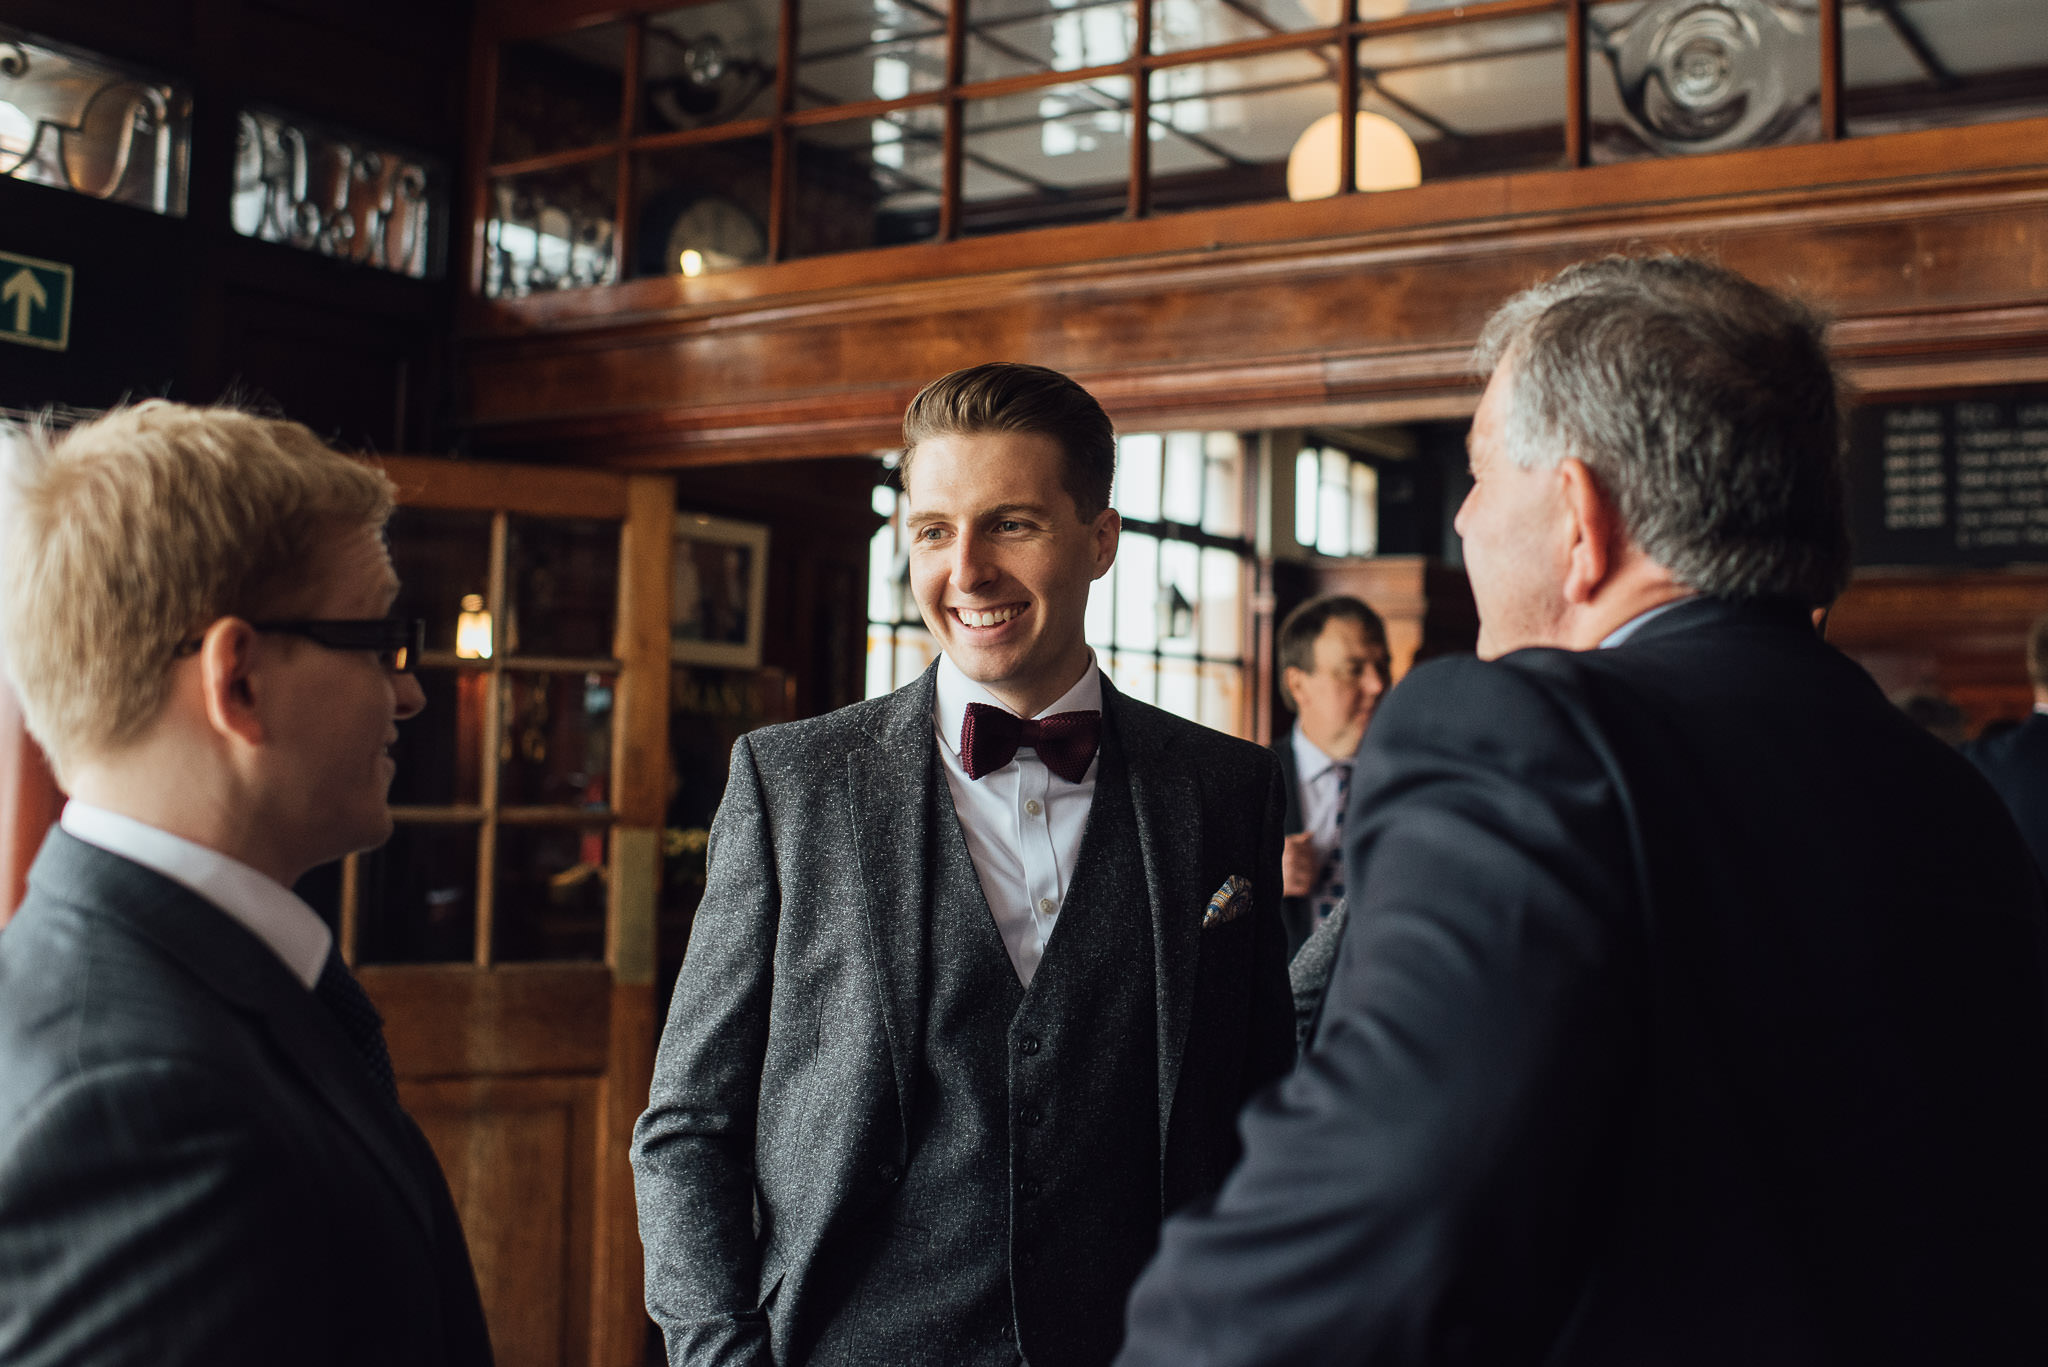 Groom getting ready in the rose and crown stoke newington in stoke newington town hall wedding by creative and alternative london wedding photographer the shannons photography